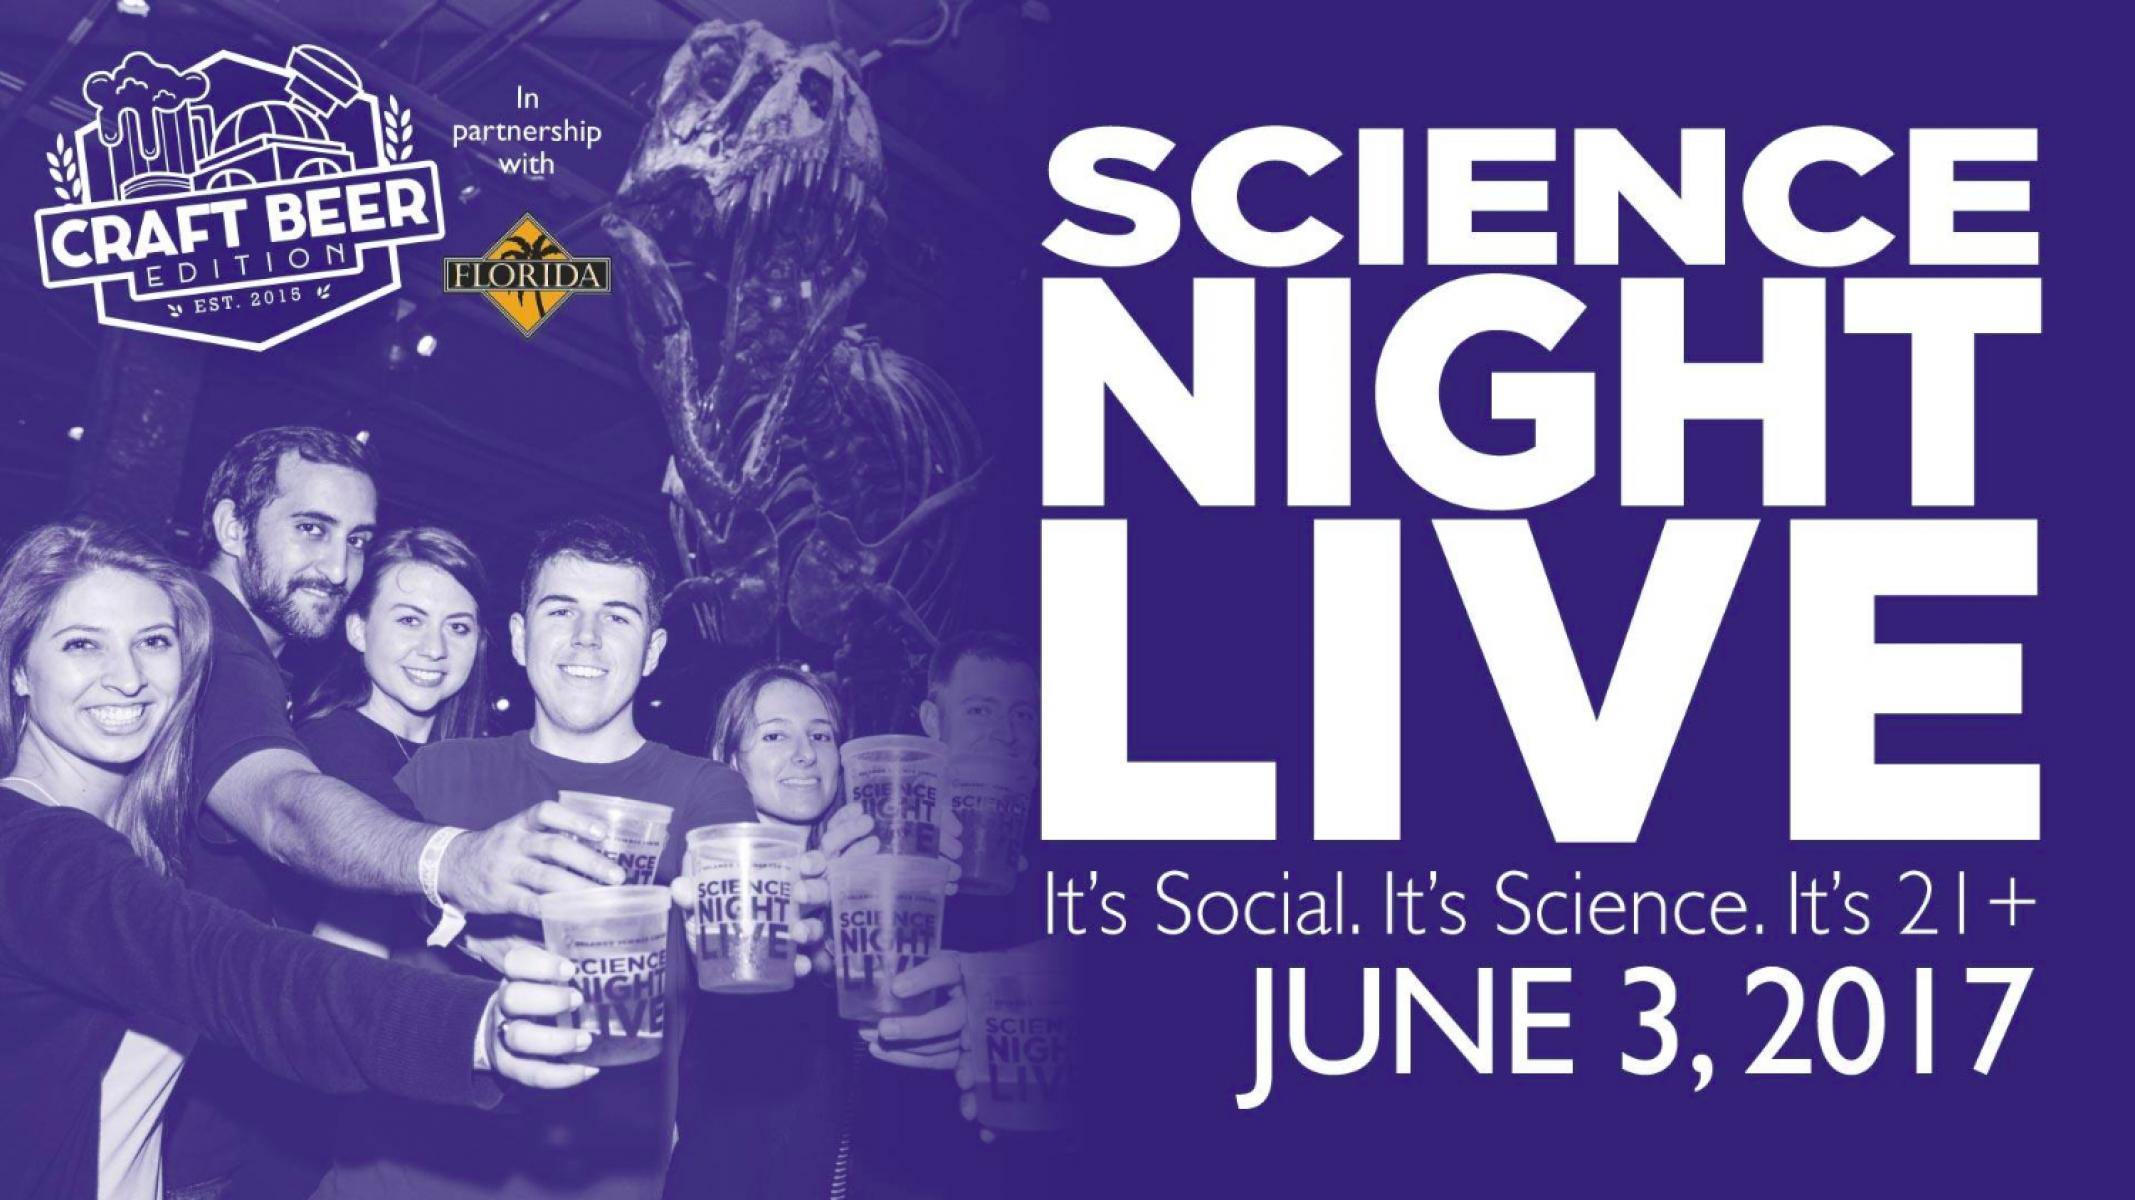 Science Night Live: Craft Beer Edition